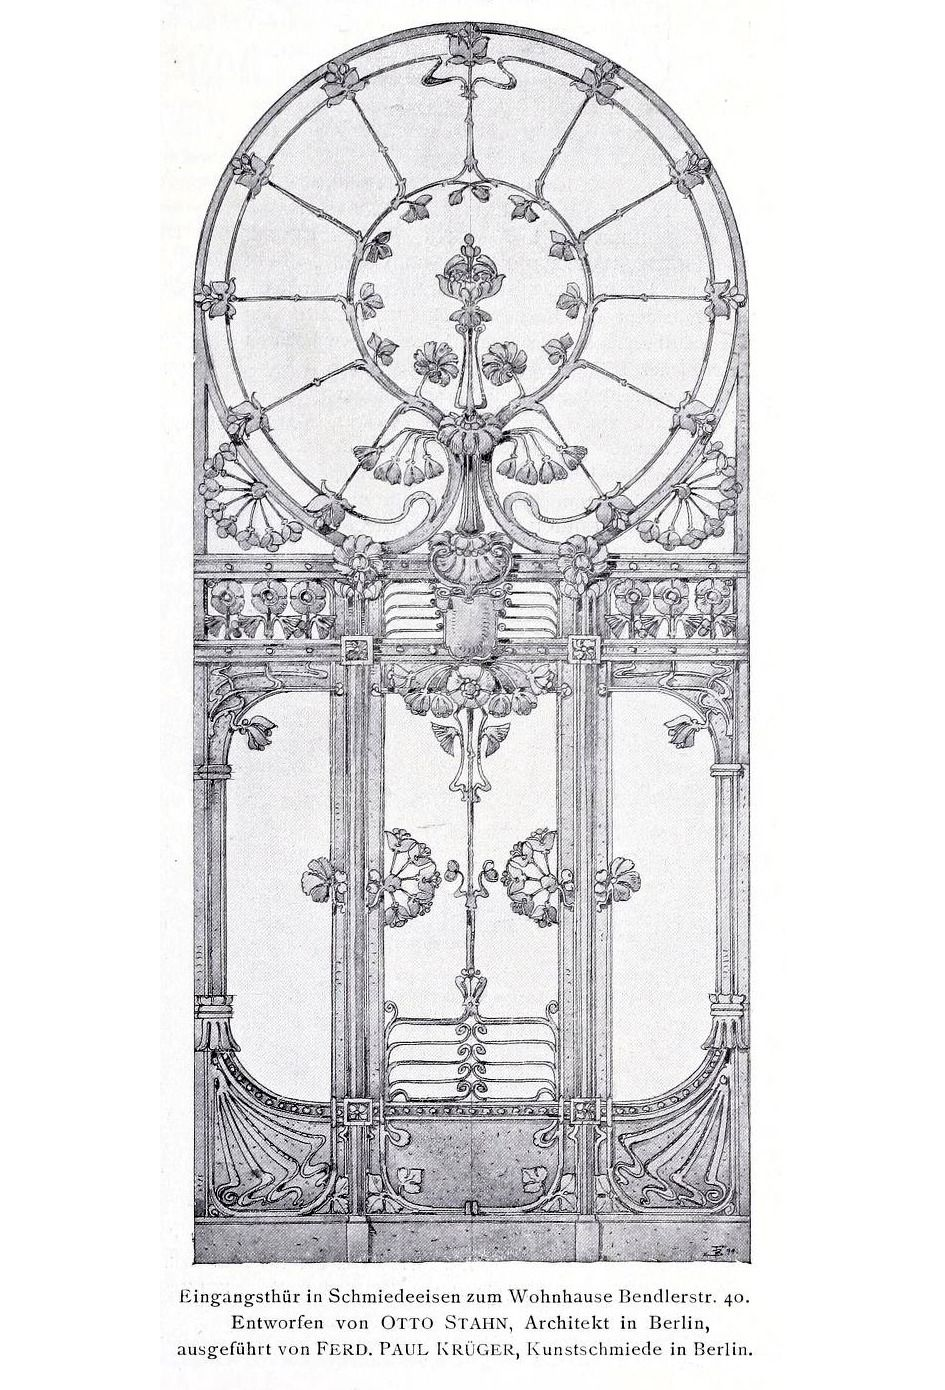 Design for the front door of a residential building, Berlin